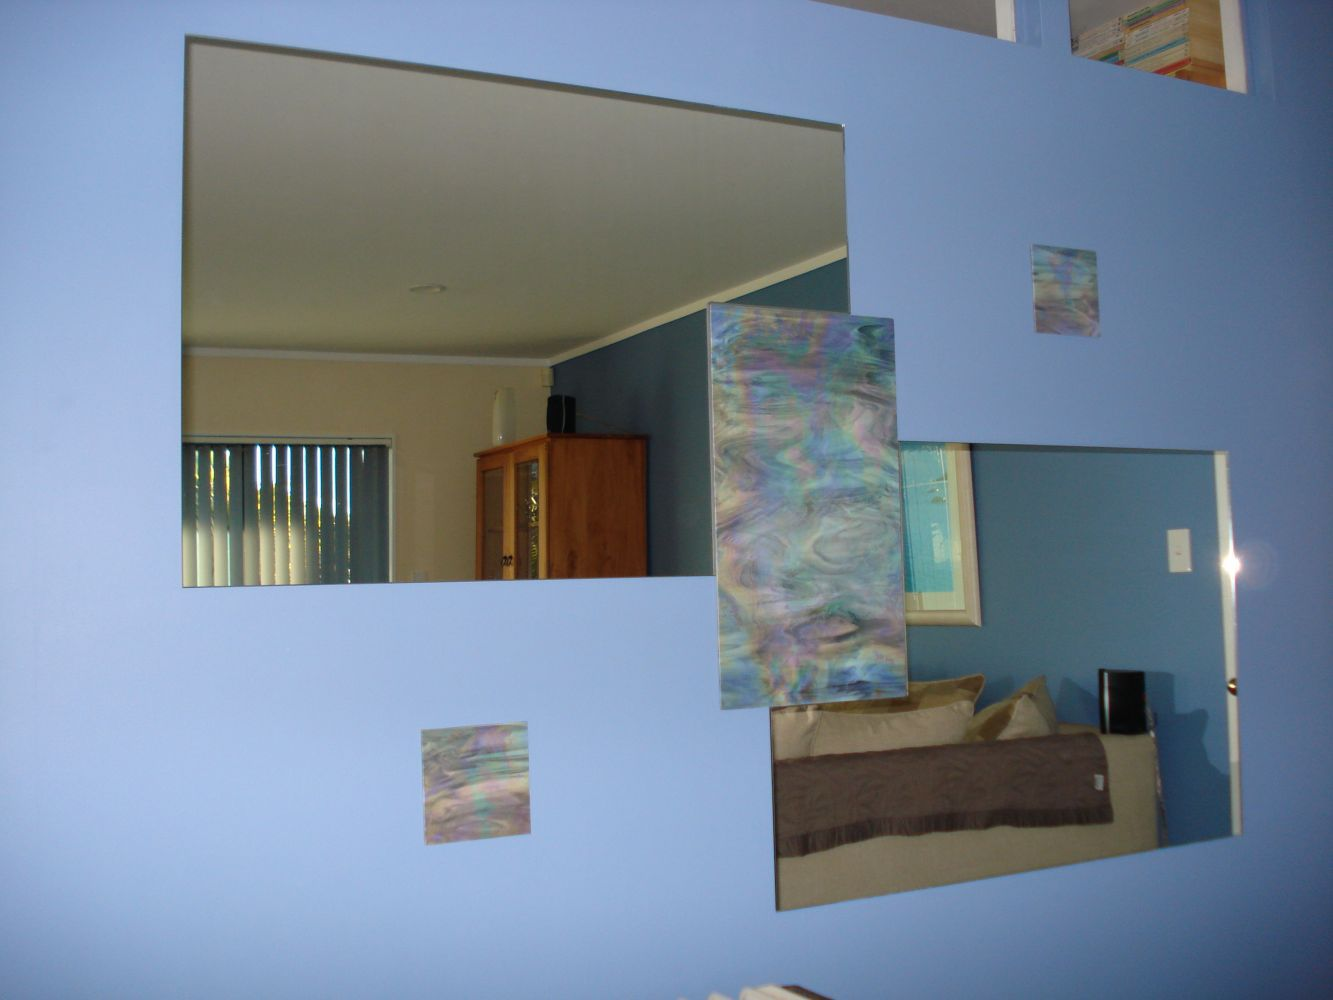 View of the mirror installed in the wall